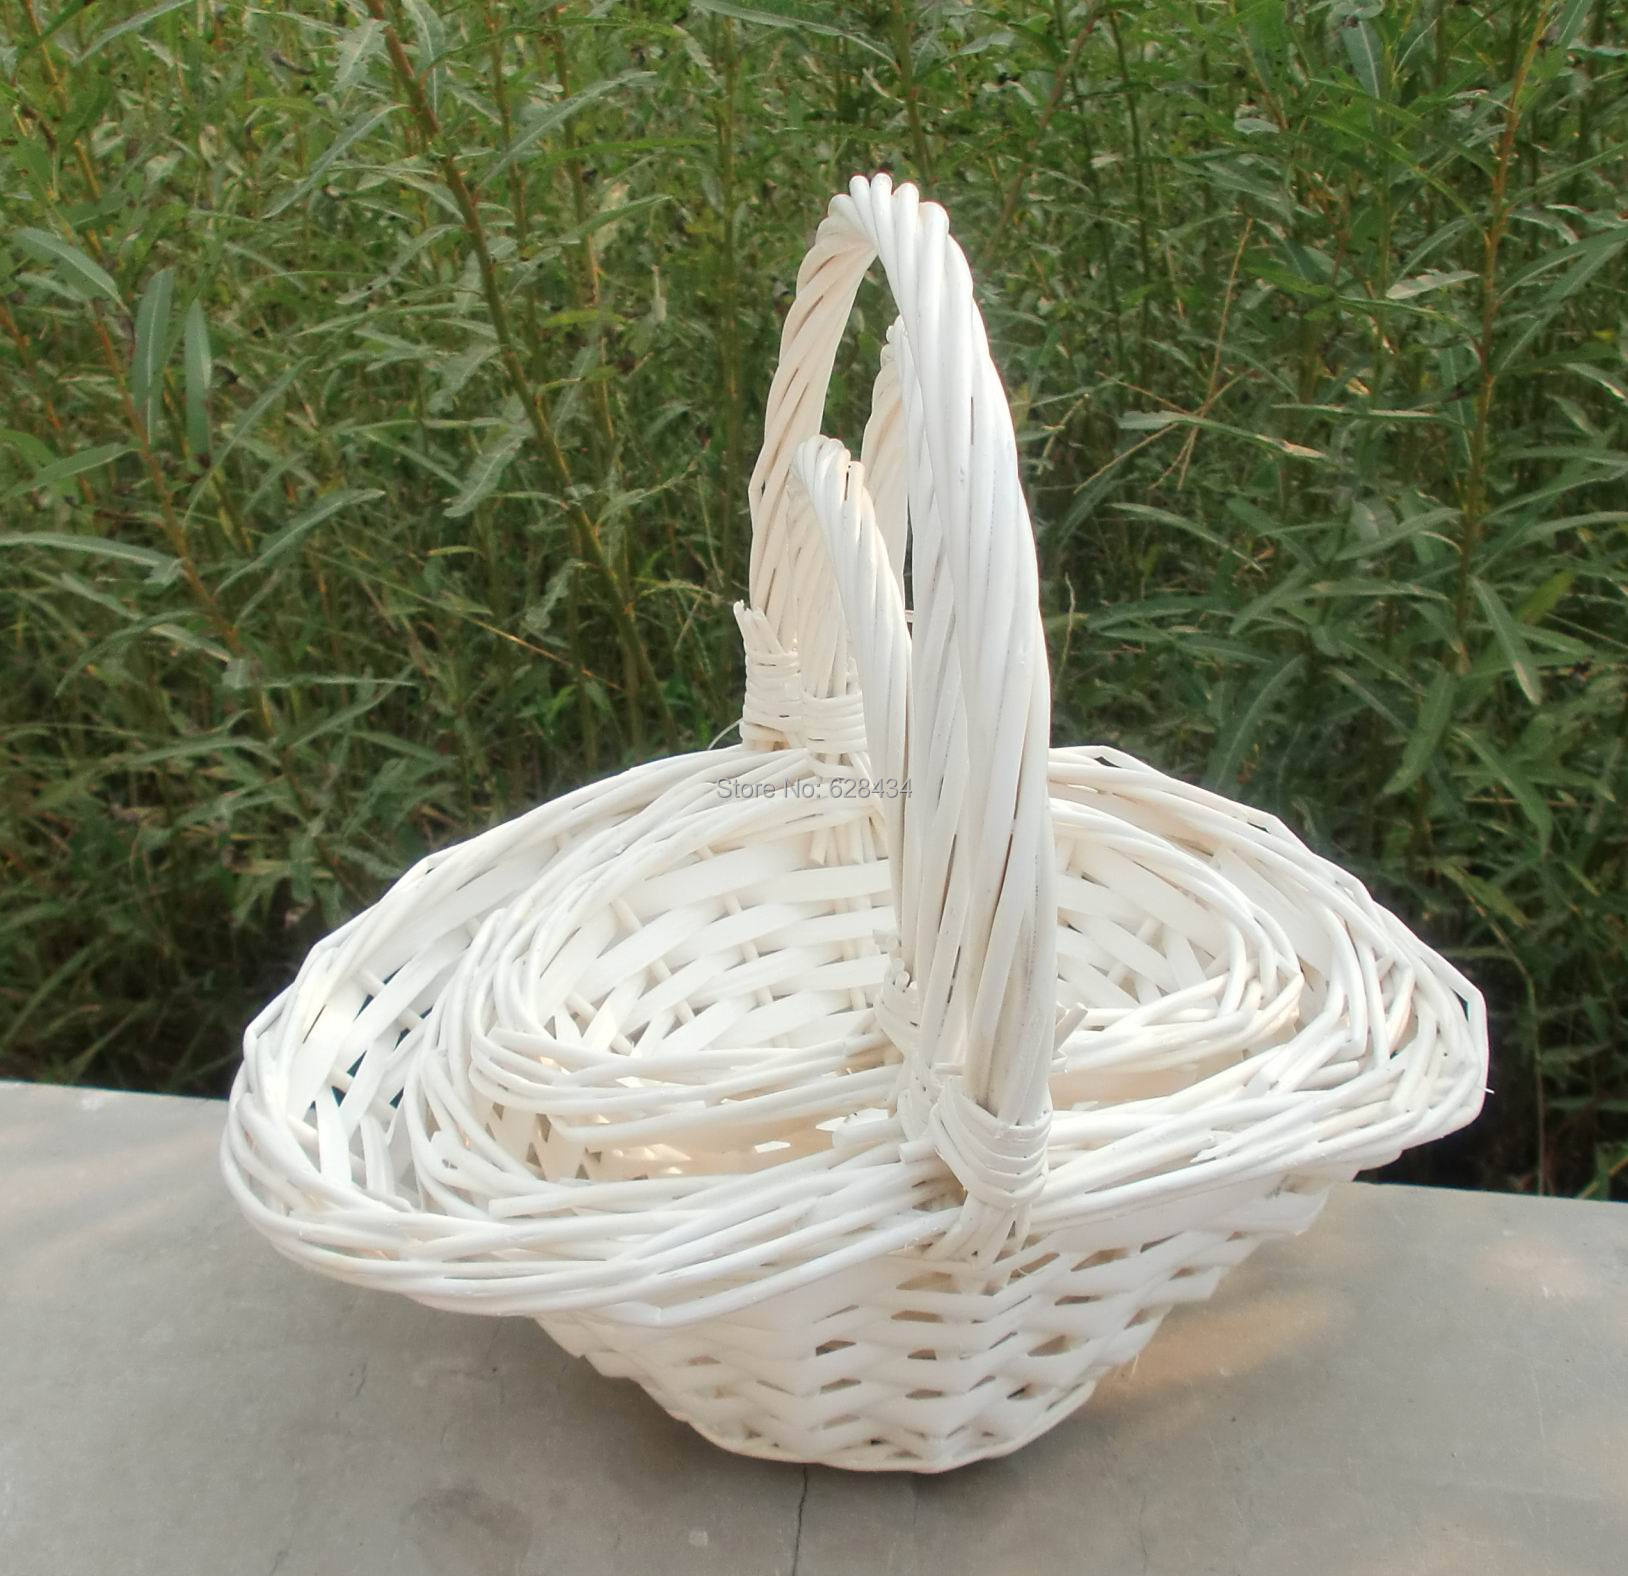 Free shipping elegant props white willow baske wicker bride wedding elegant props white willow baske wicker bride wedding flower girl basket mini home decor craft barbie doll dress in storage boxes bins from home garden mightylinksfo